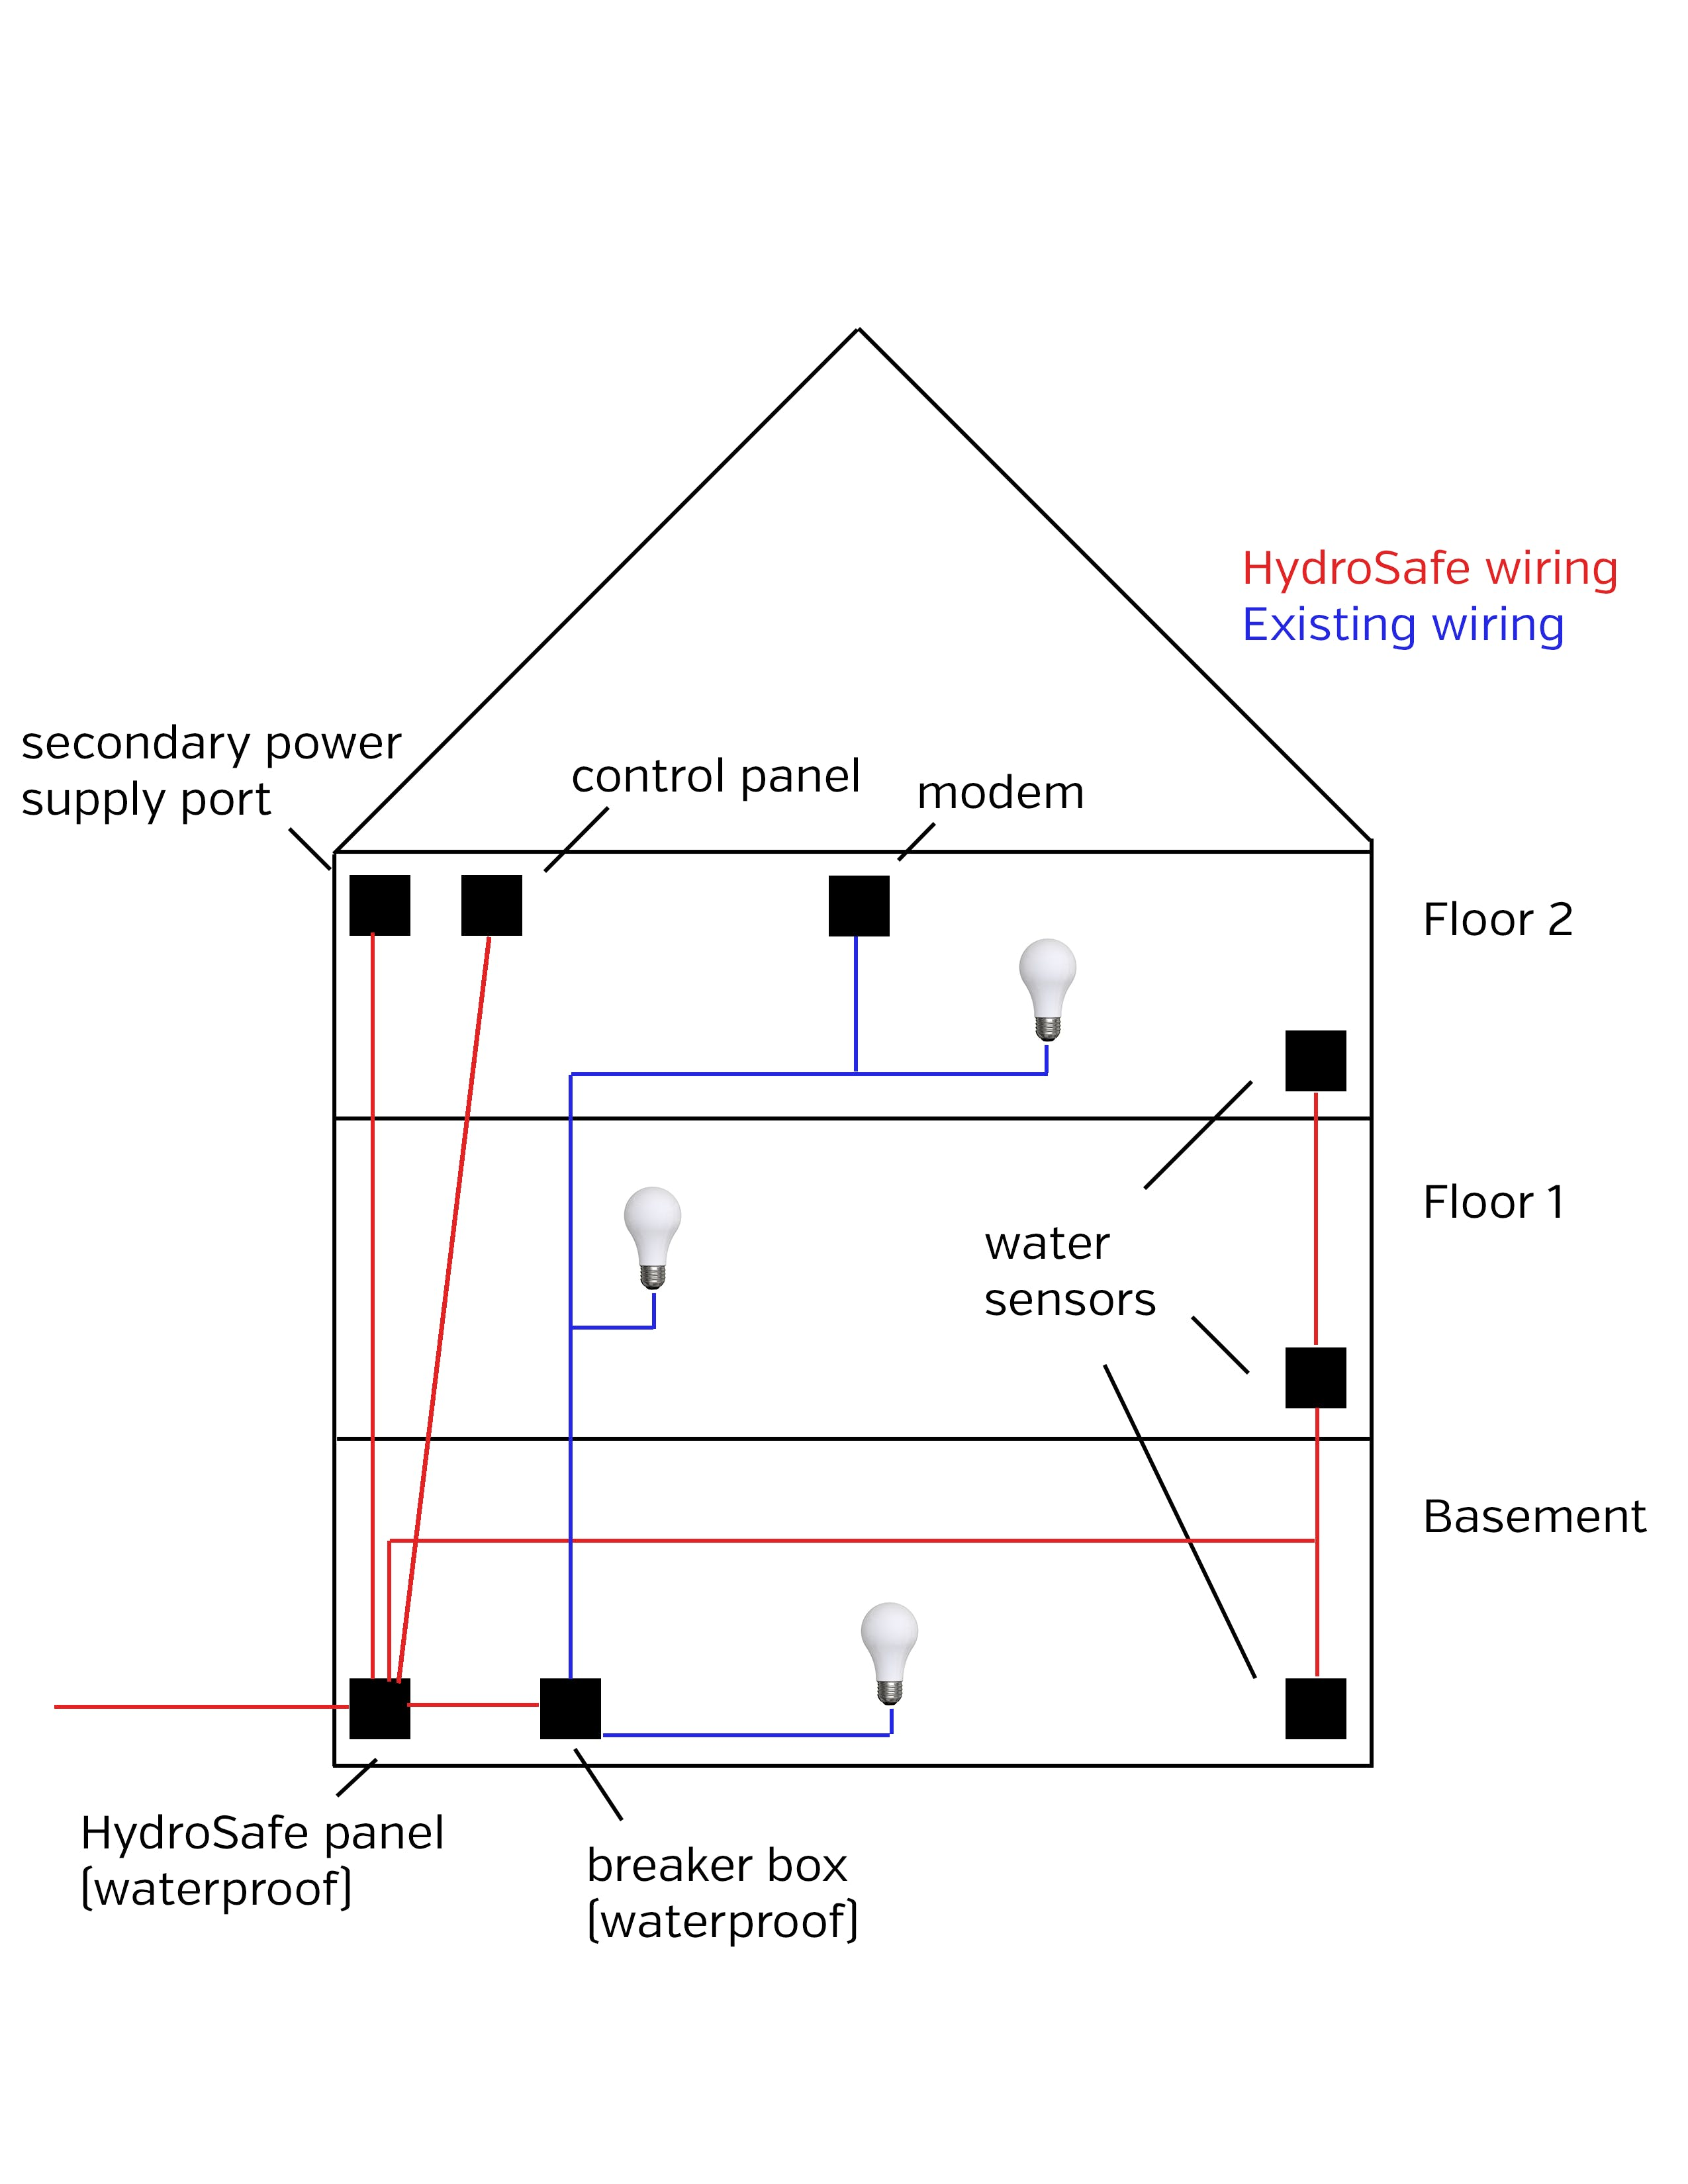 General diagram of installation locations. The secondary power supply port and modem is located at the top floor of the home so that it will be most safe from flooding.